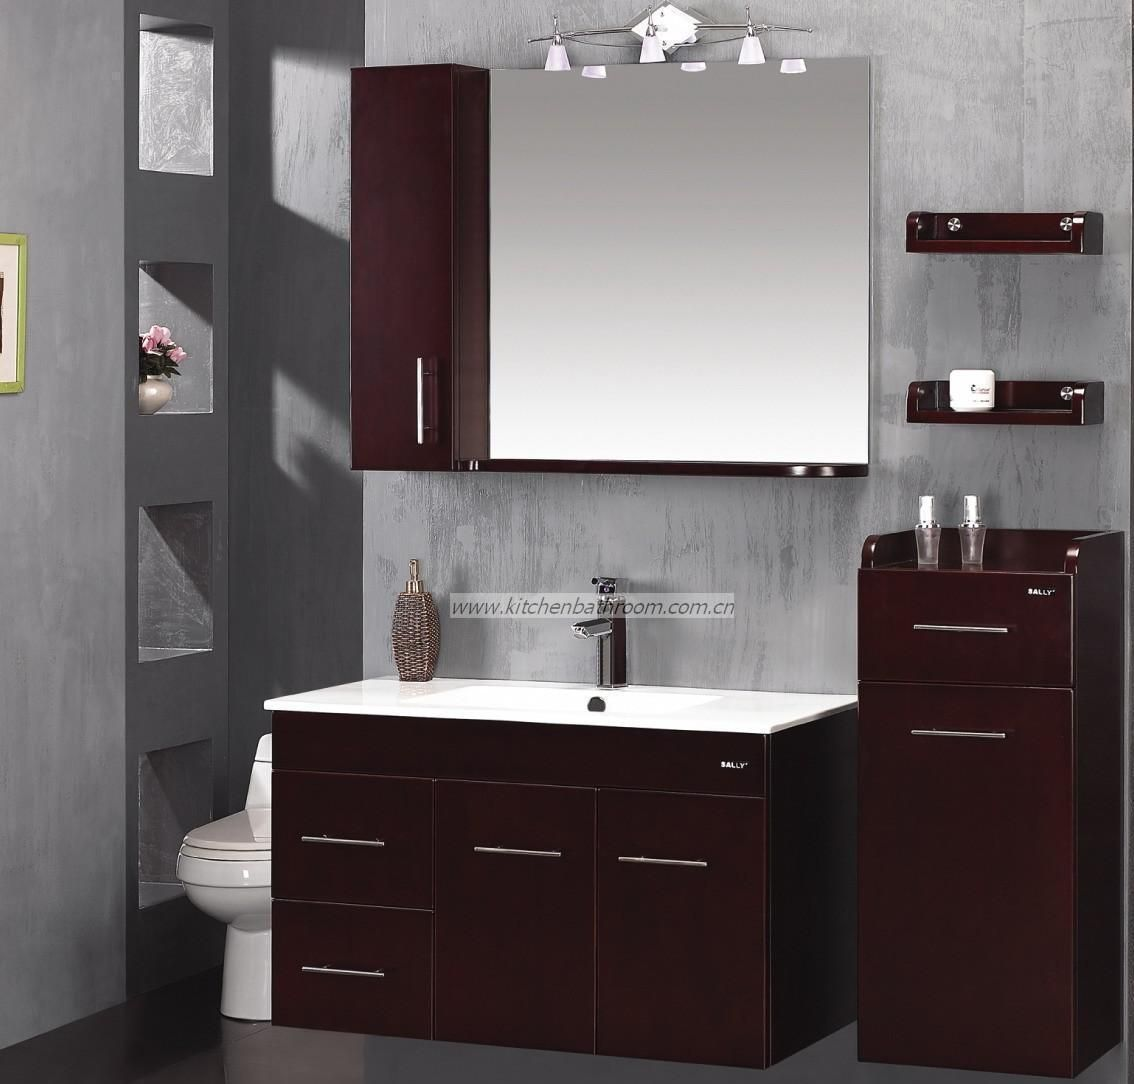 Best Photo Gallery For Website DIY painted bathroom cabinets It us super simple to achieve in this how to with homemade